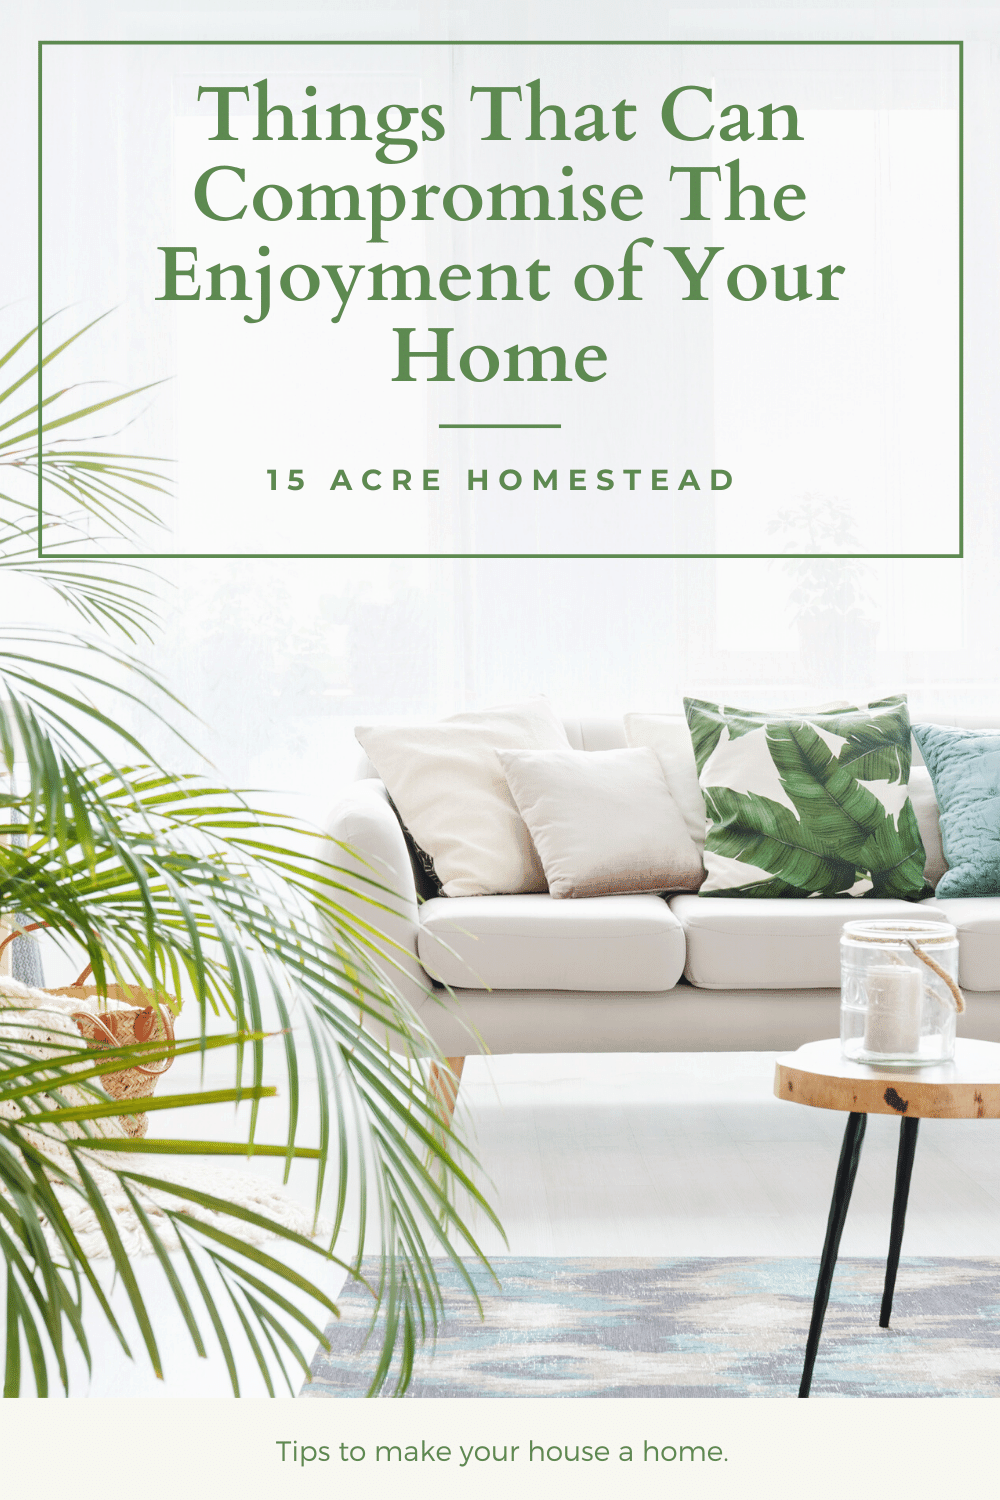 Start enjoying your home more by following the tips here.